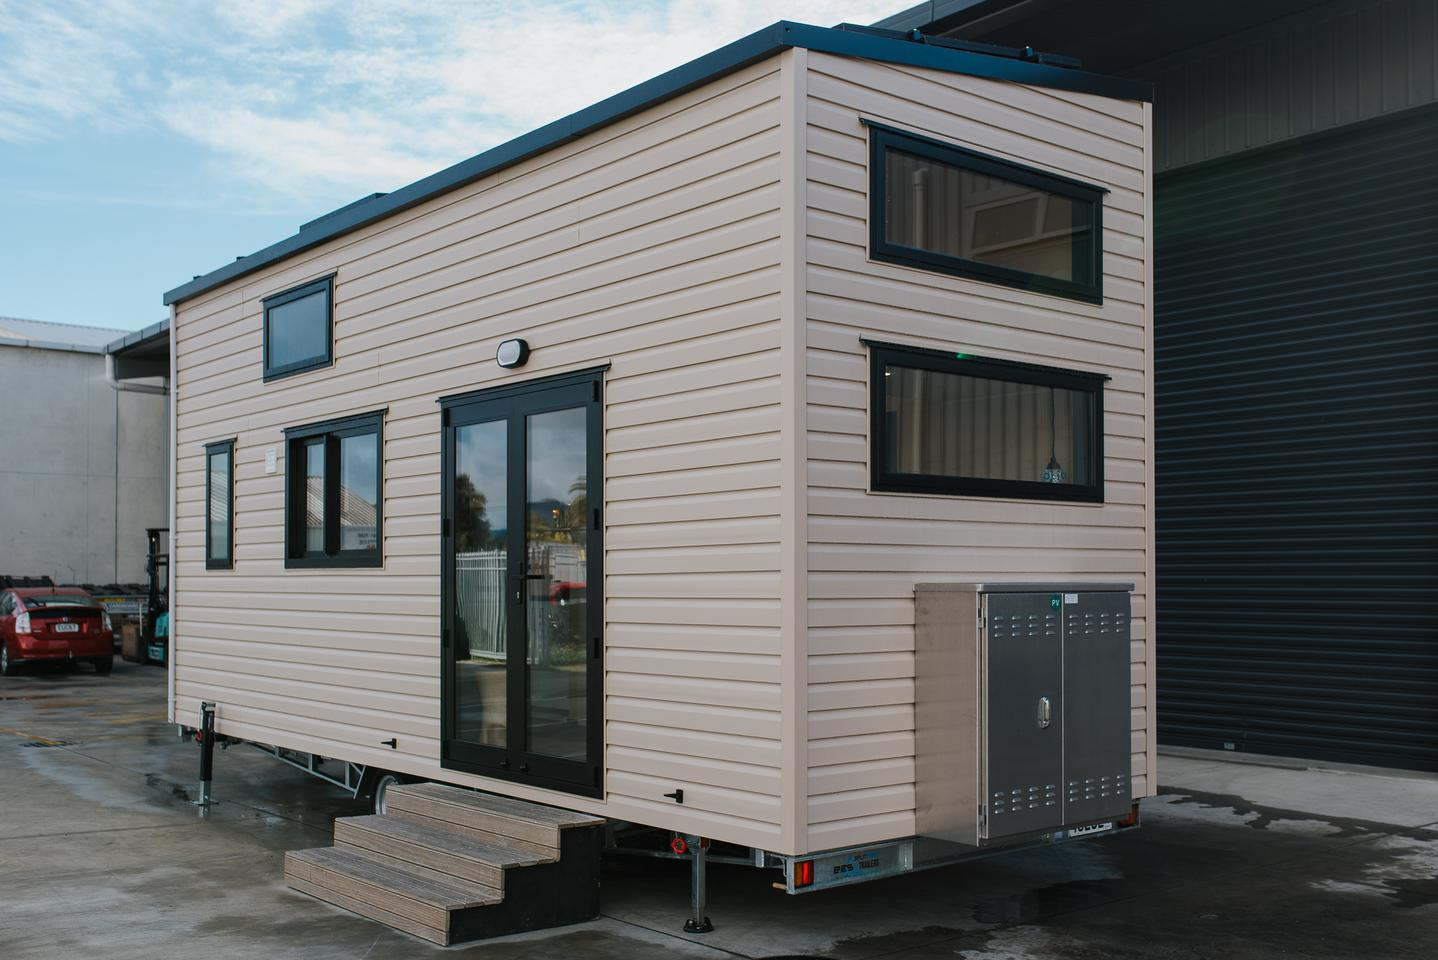 The Daisy Vera Tiny House was delivered as a turnkey build, including furniture and appliances, but not including the solar gear, for NZD 142,000